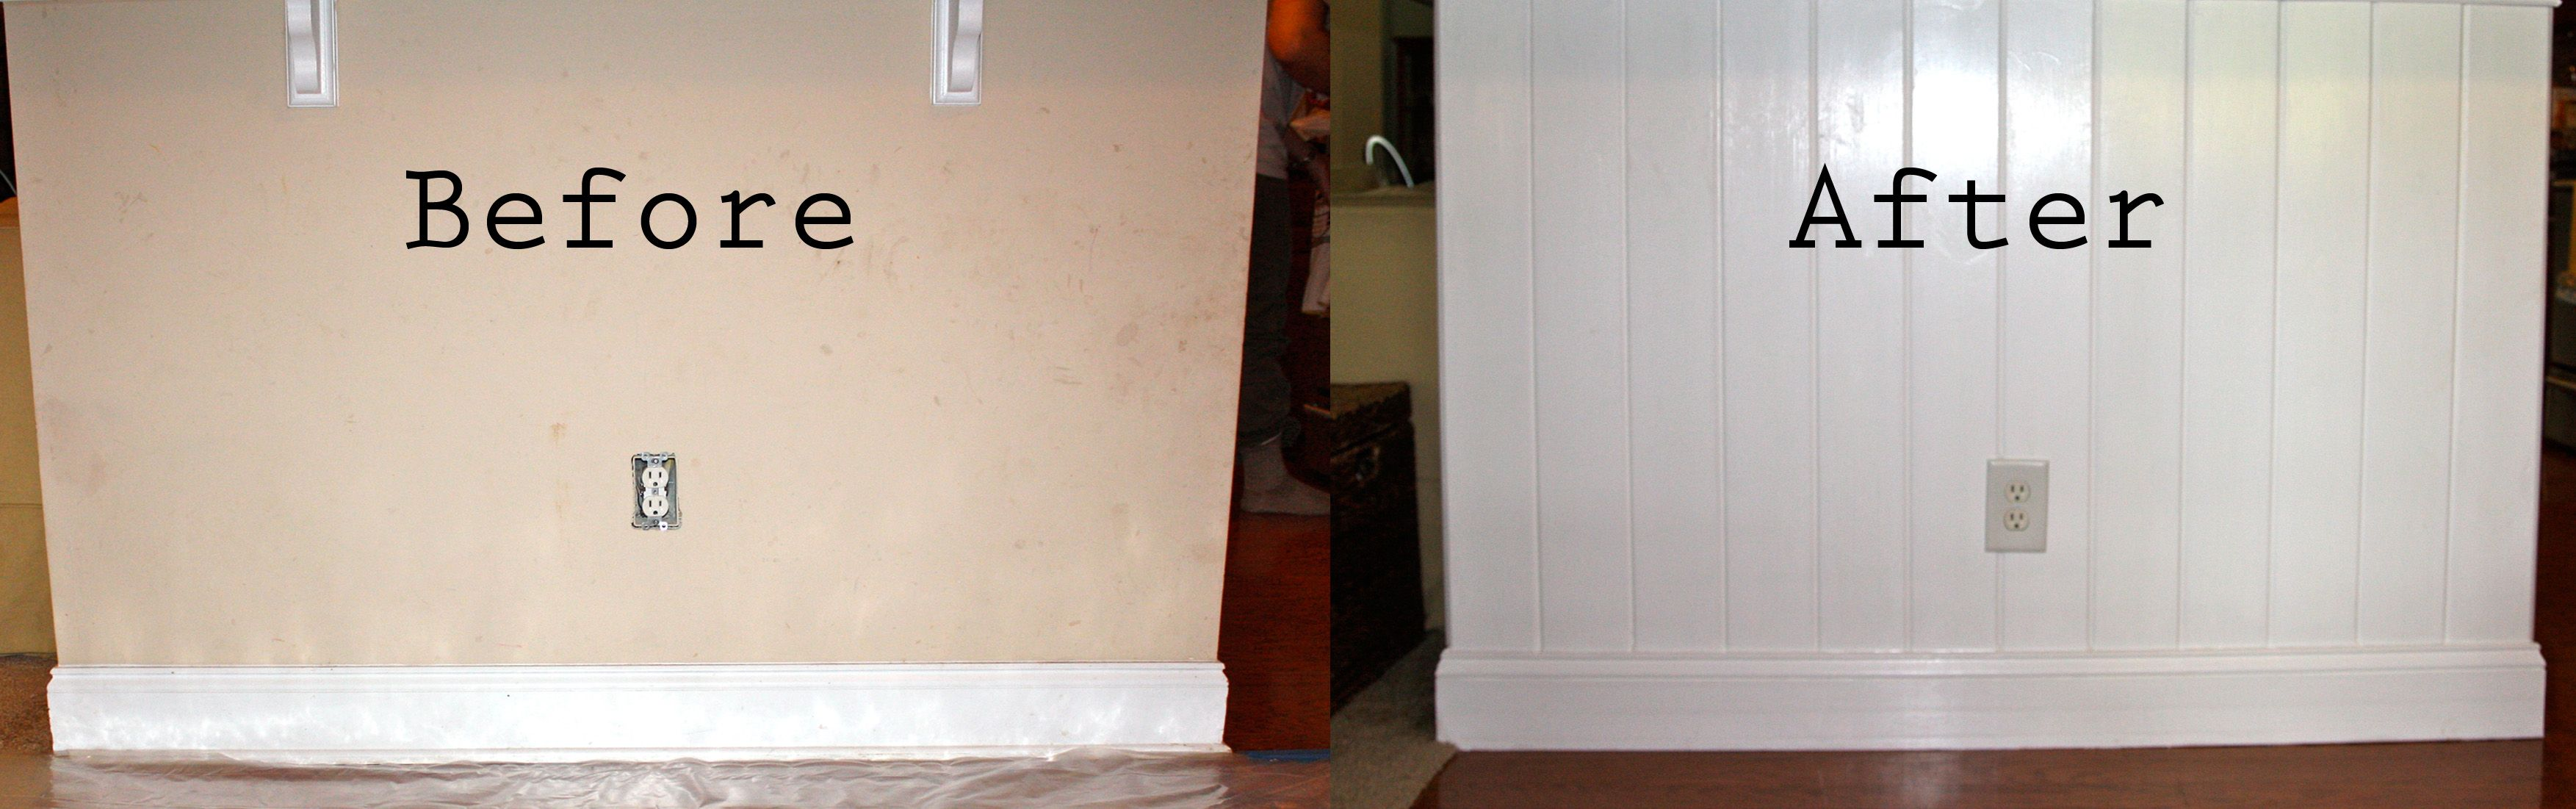 How To Install Wood Paneling Decor Wood Paneling Home